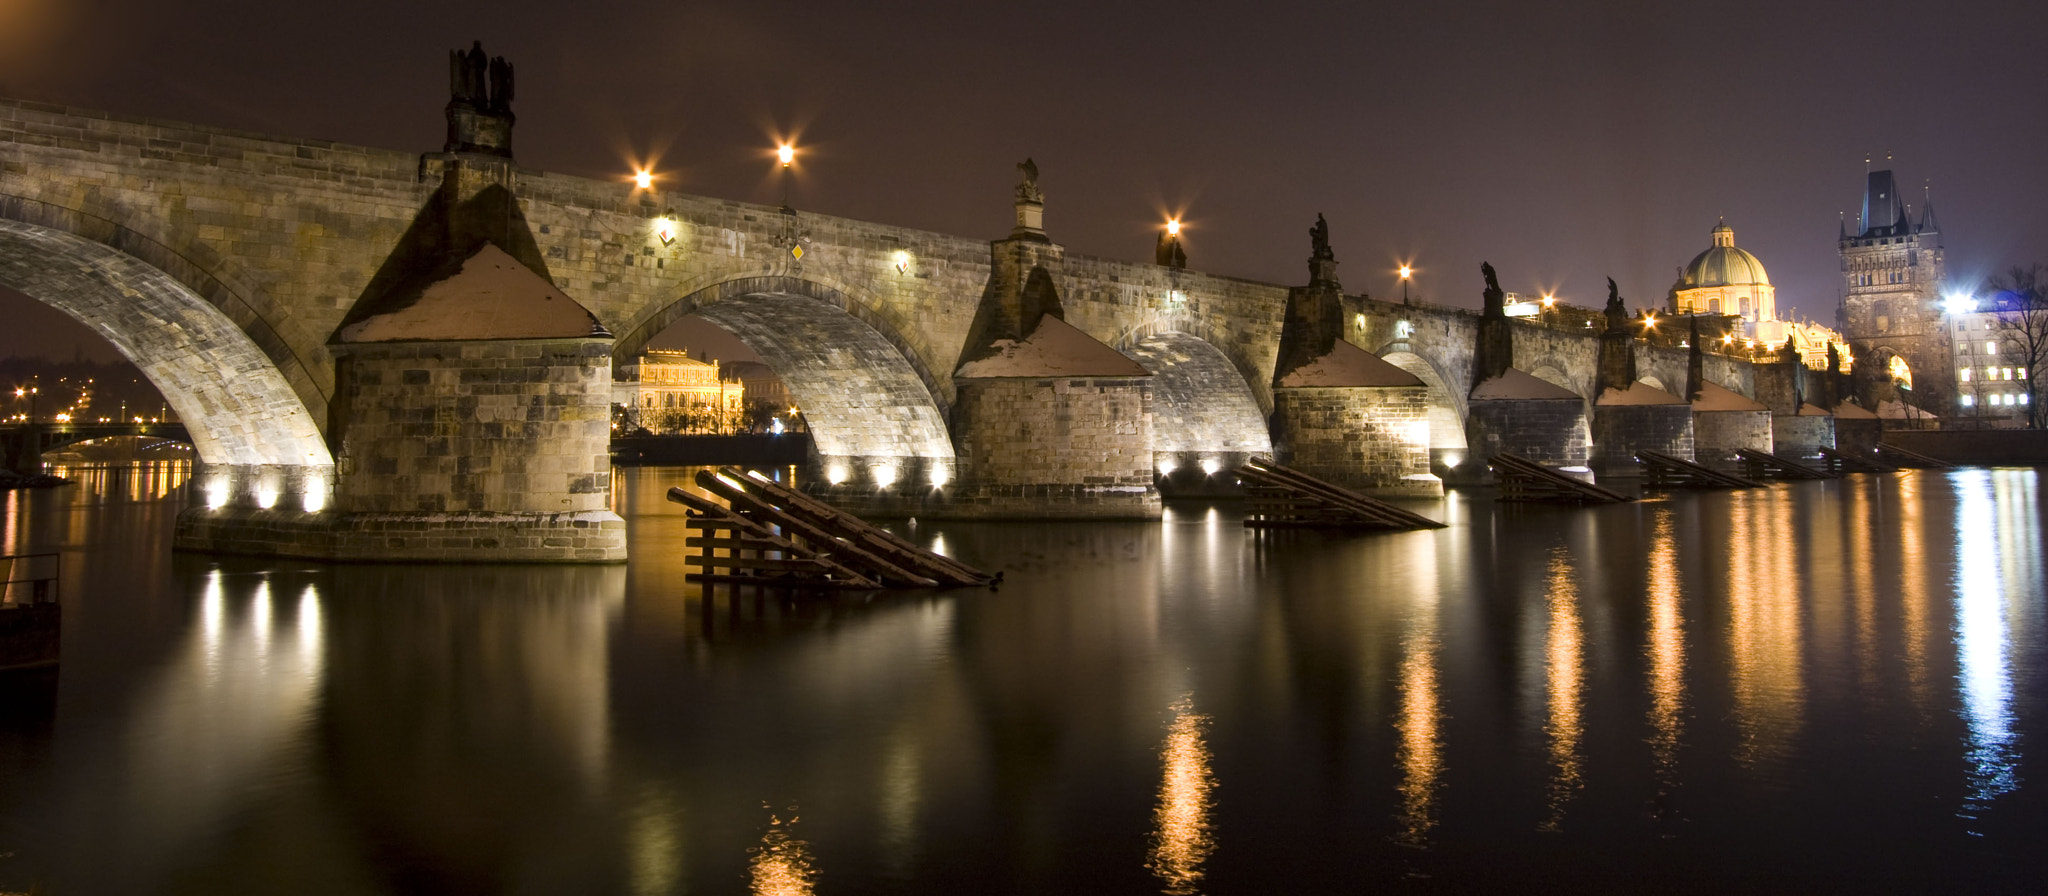 Photograph Charles Bridge Prague by Shannon Ley on 500px